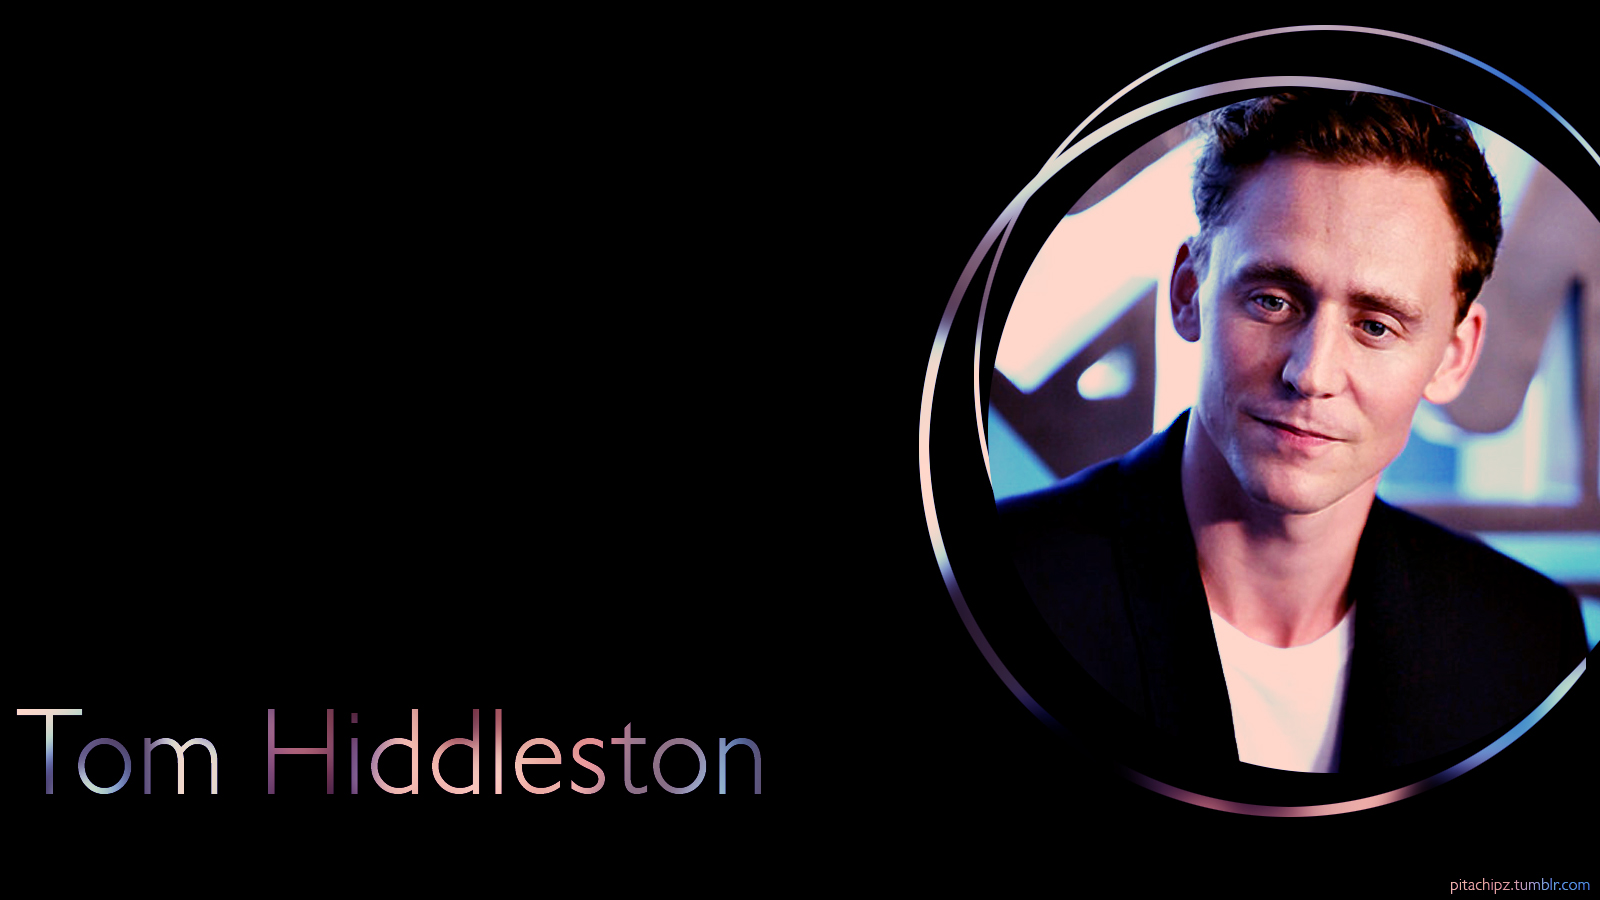 image caption tom hiddleston wallpaper by botan08 on deviantart 1600x900